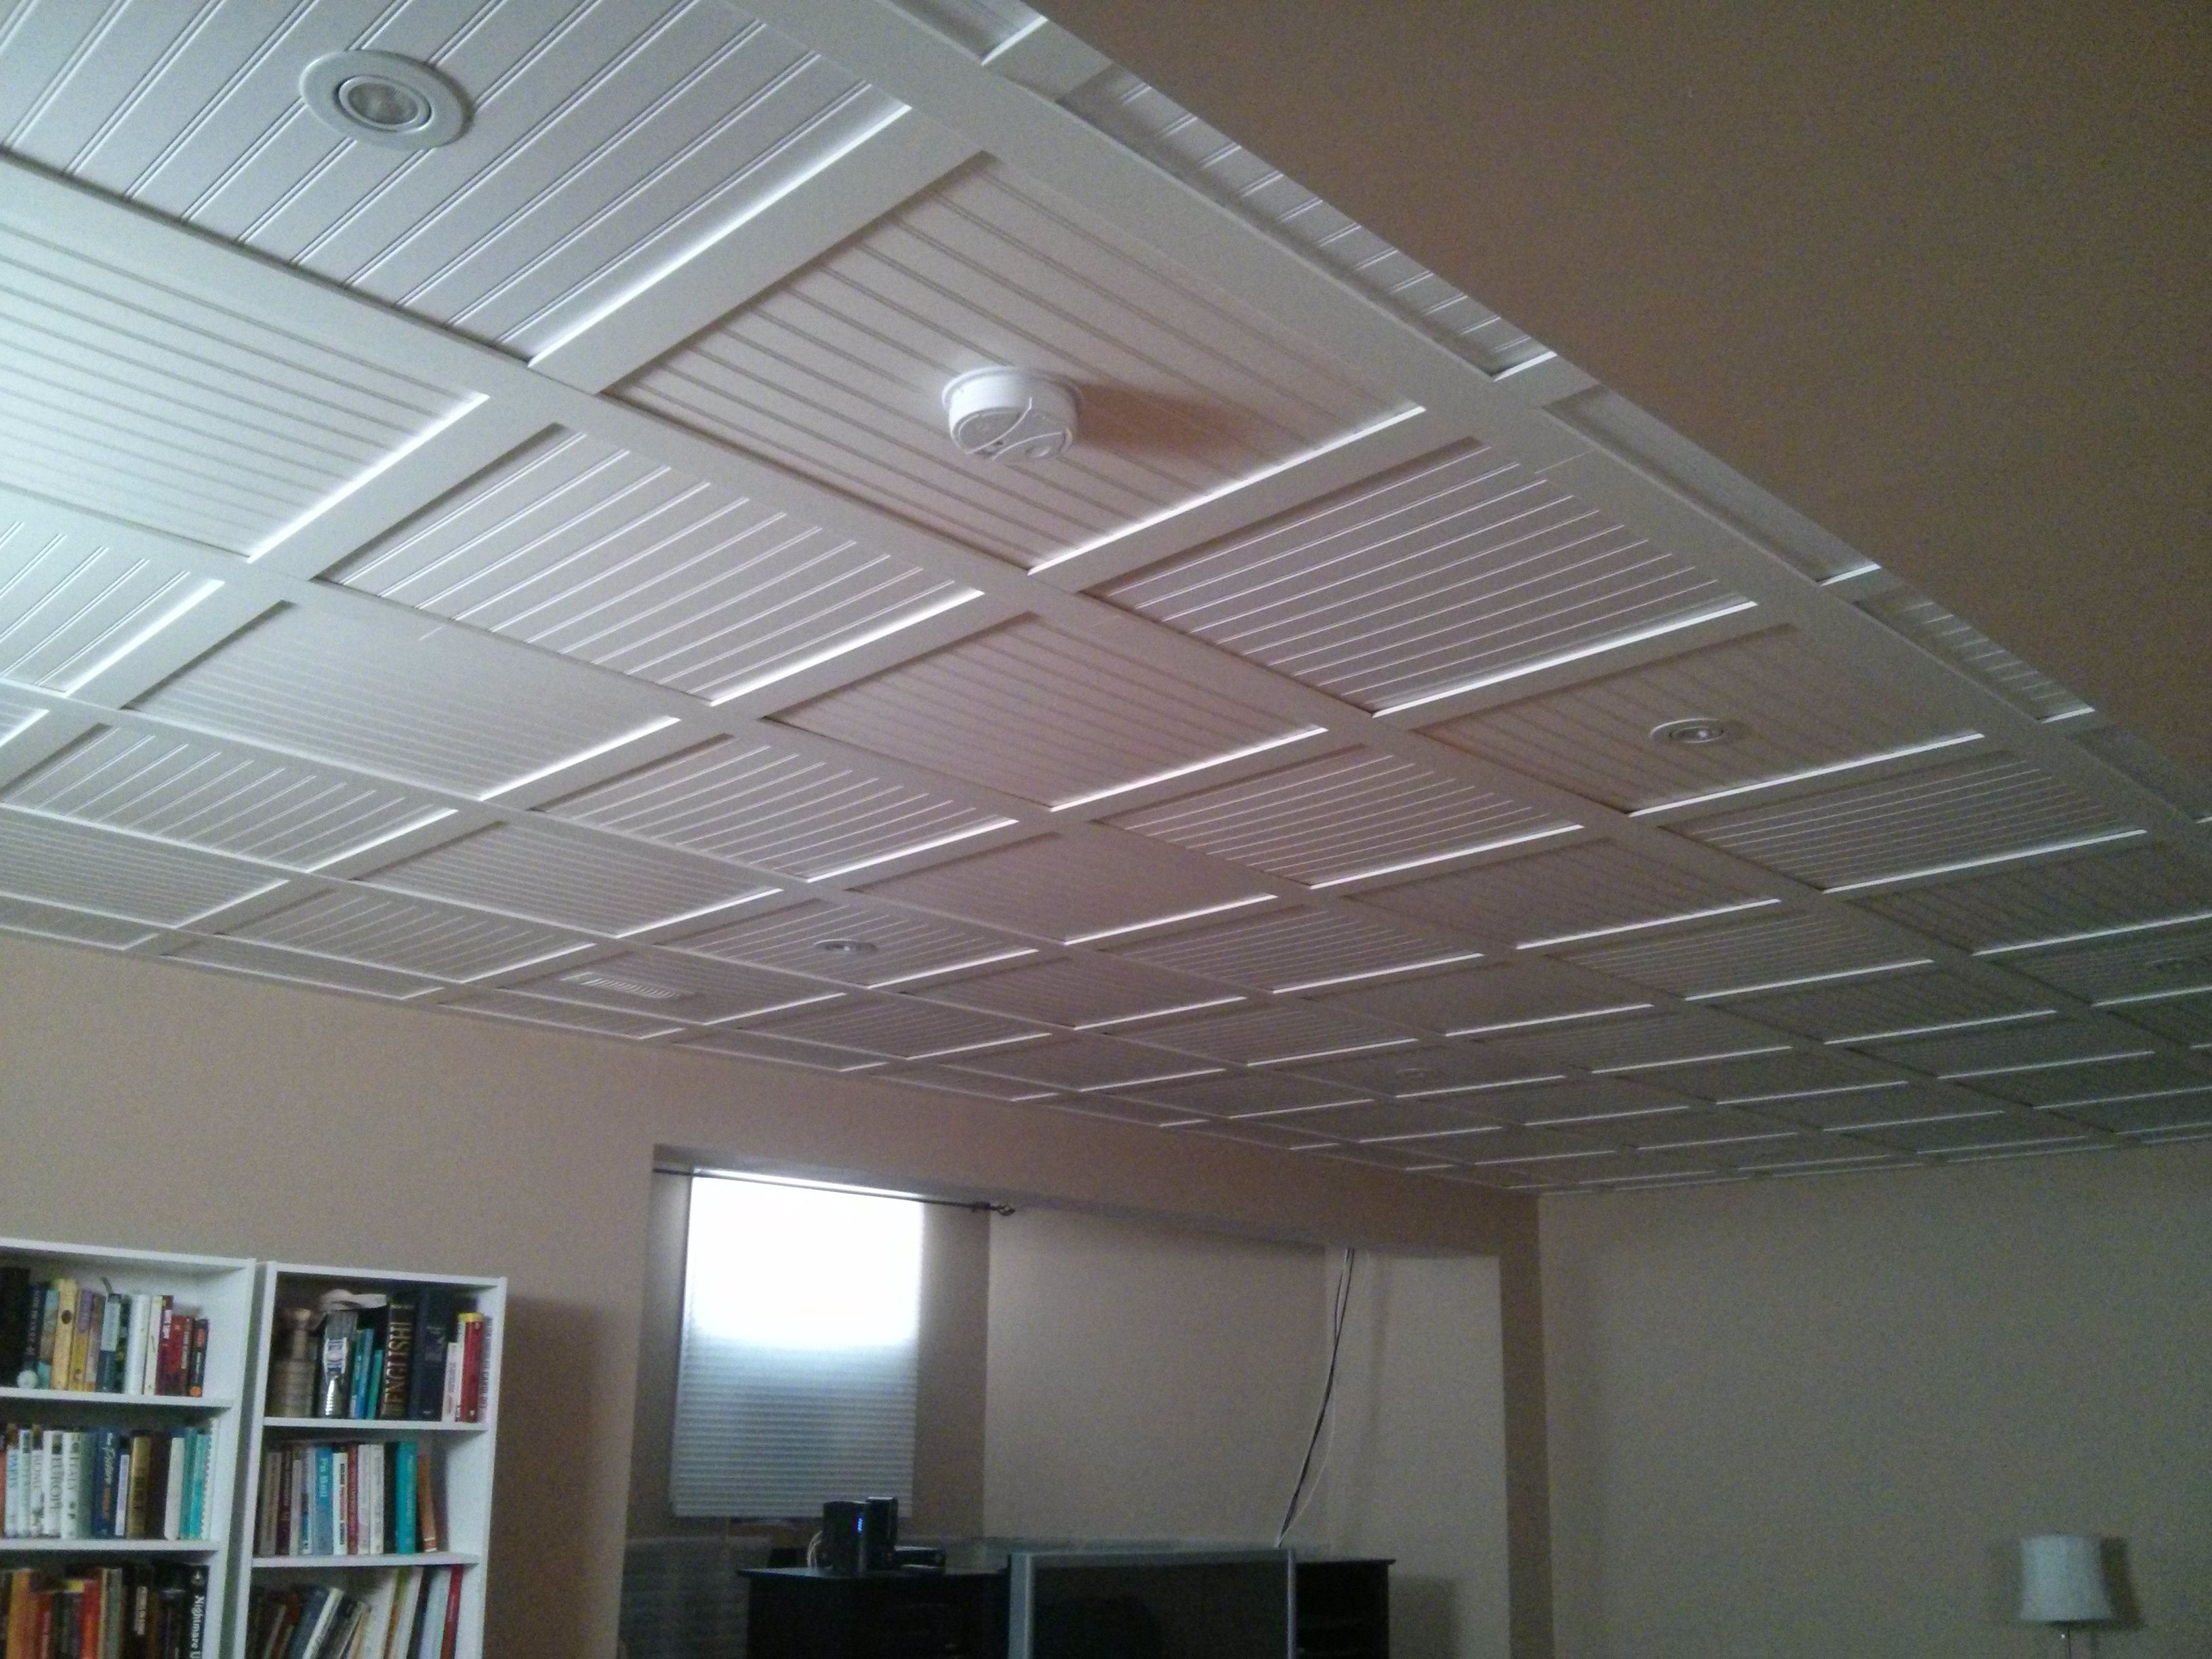 tilesexterior drop ceilling suspended mesh ceilings tiles exterior ceiling aluminum down stretched